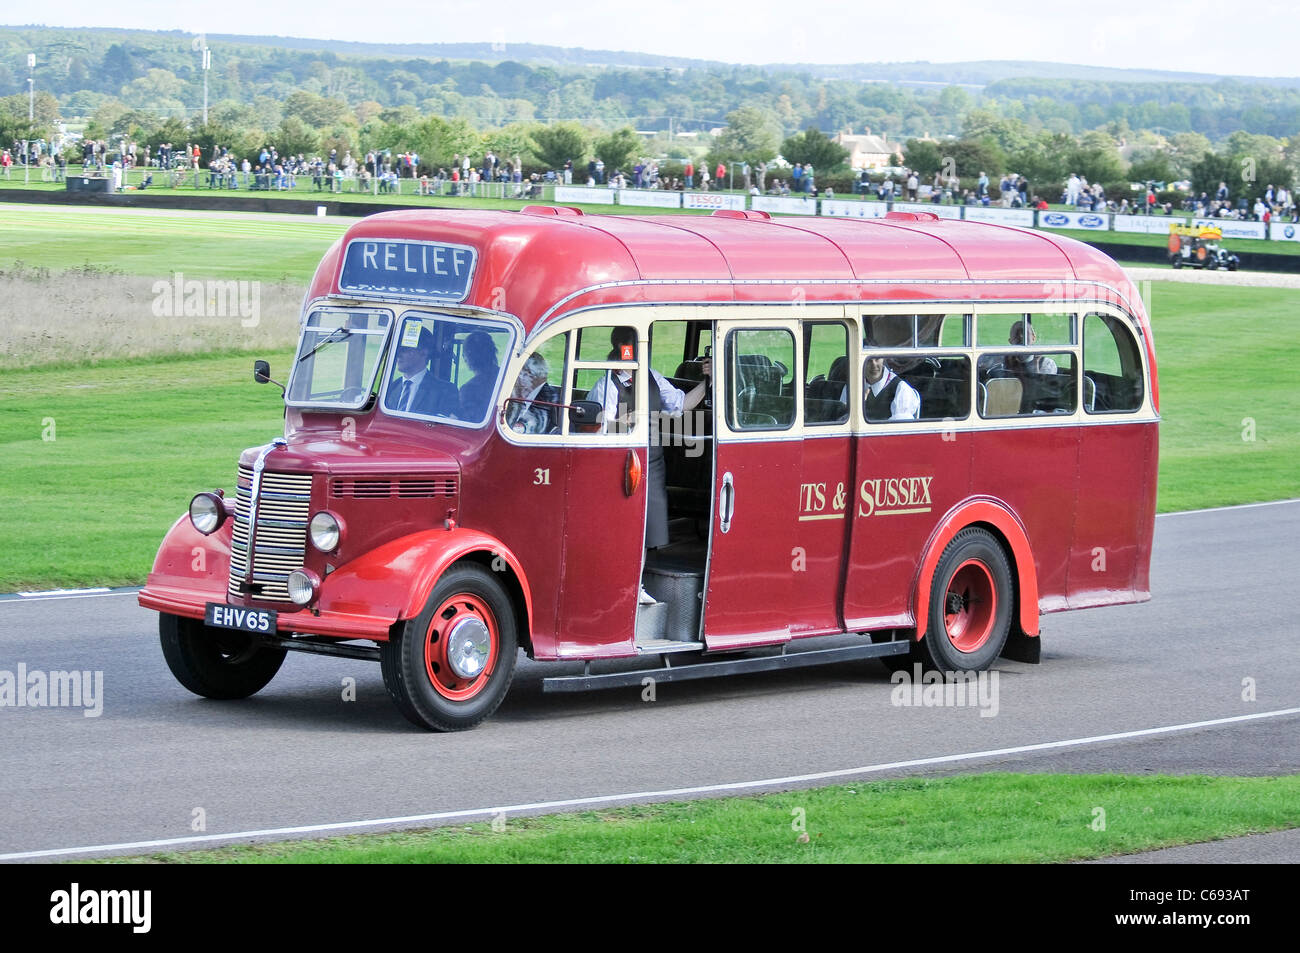 Image result for 1950s busses